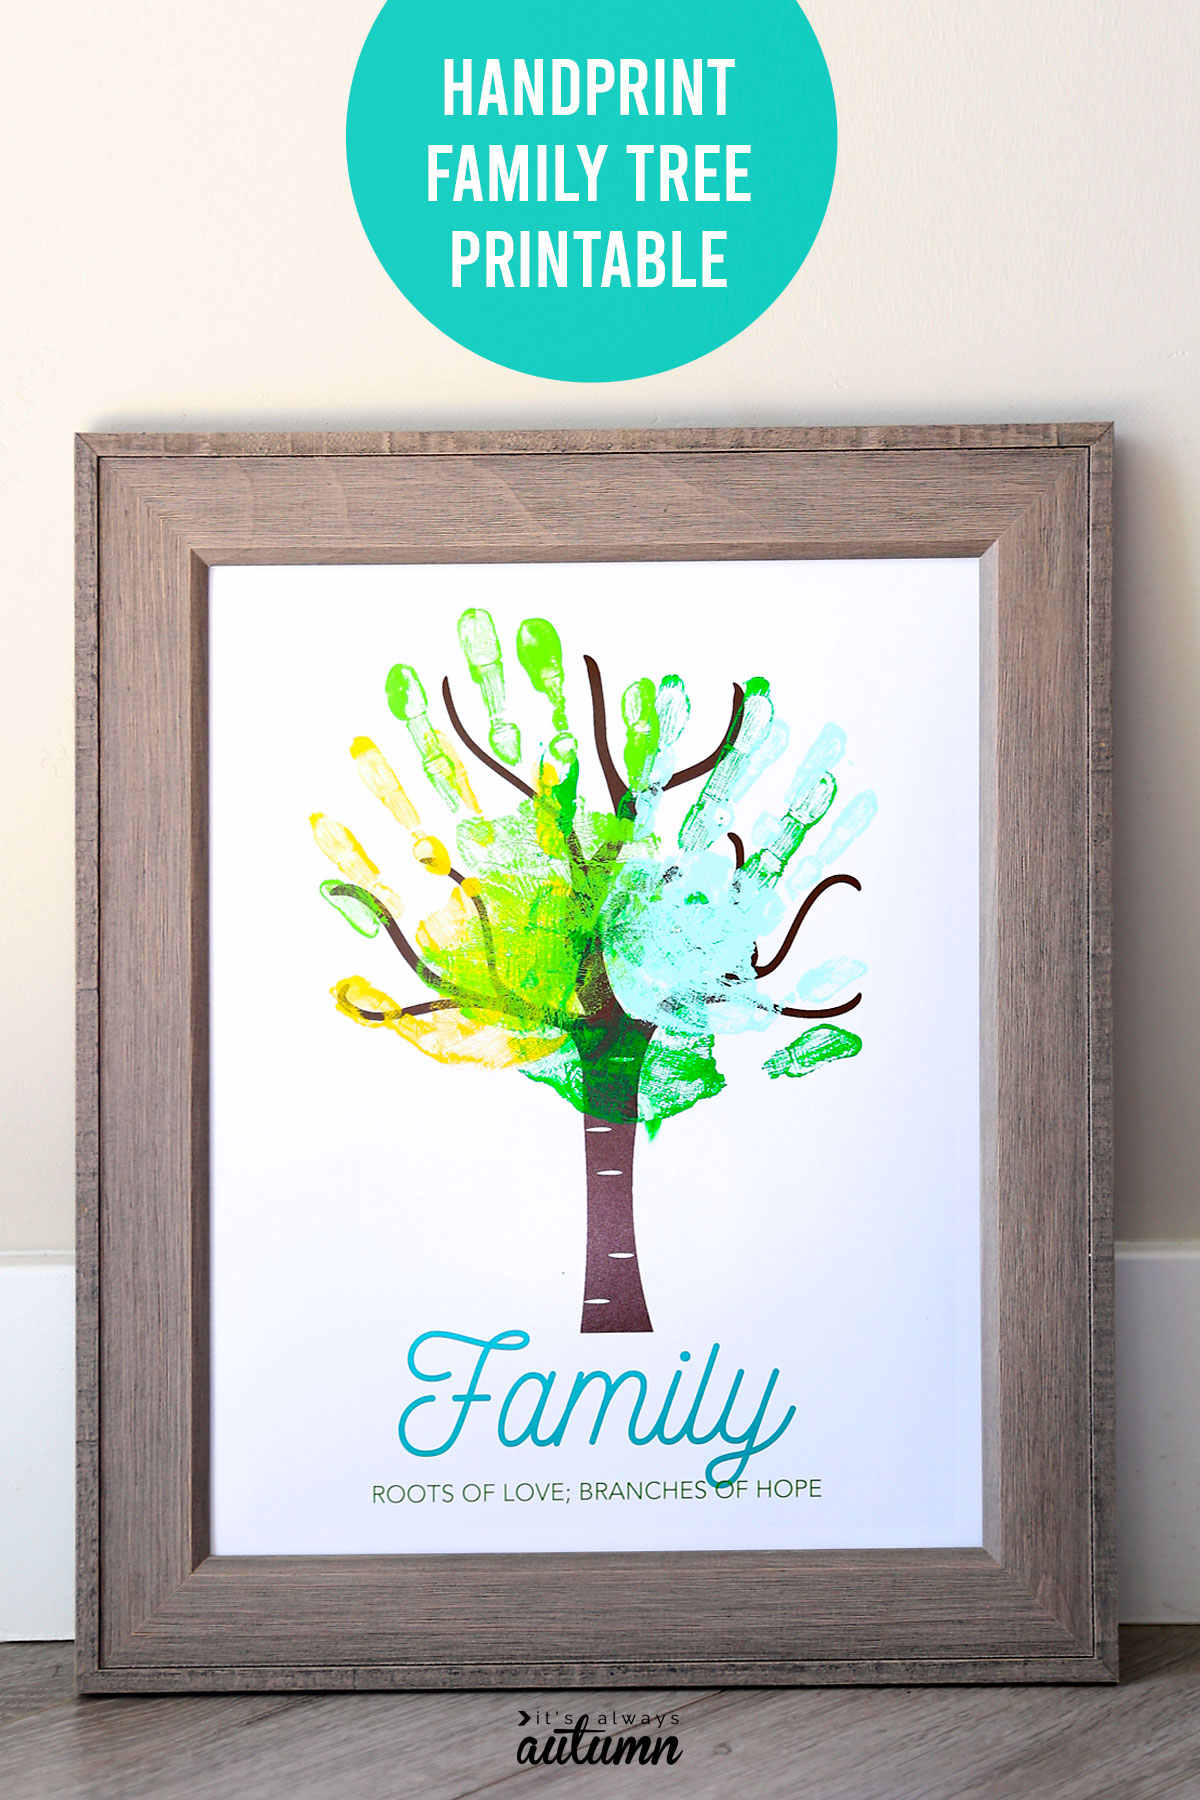 Cute family handprint tree! Click through for the free printable tree, then personalize with your family's handprints.